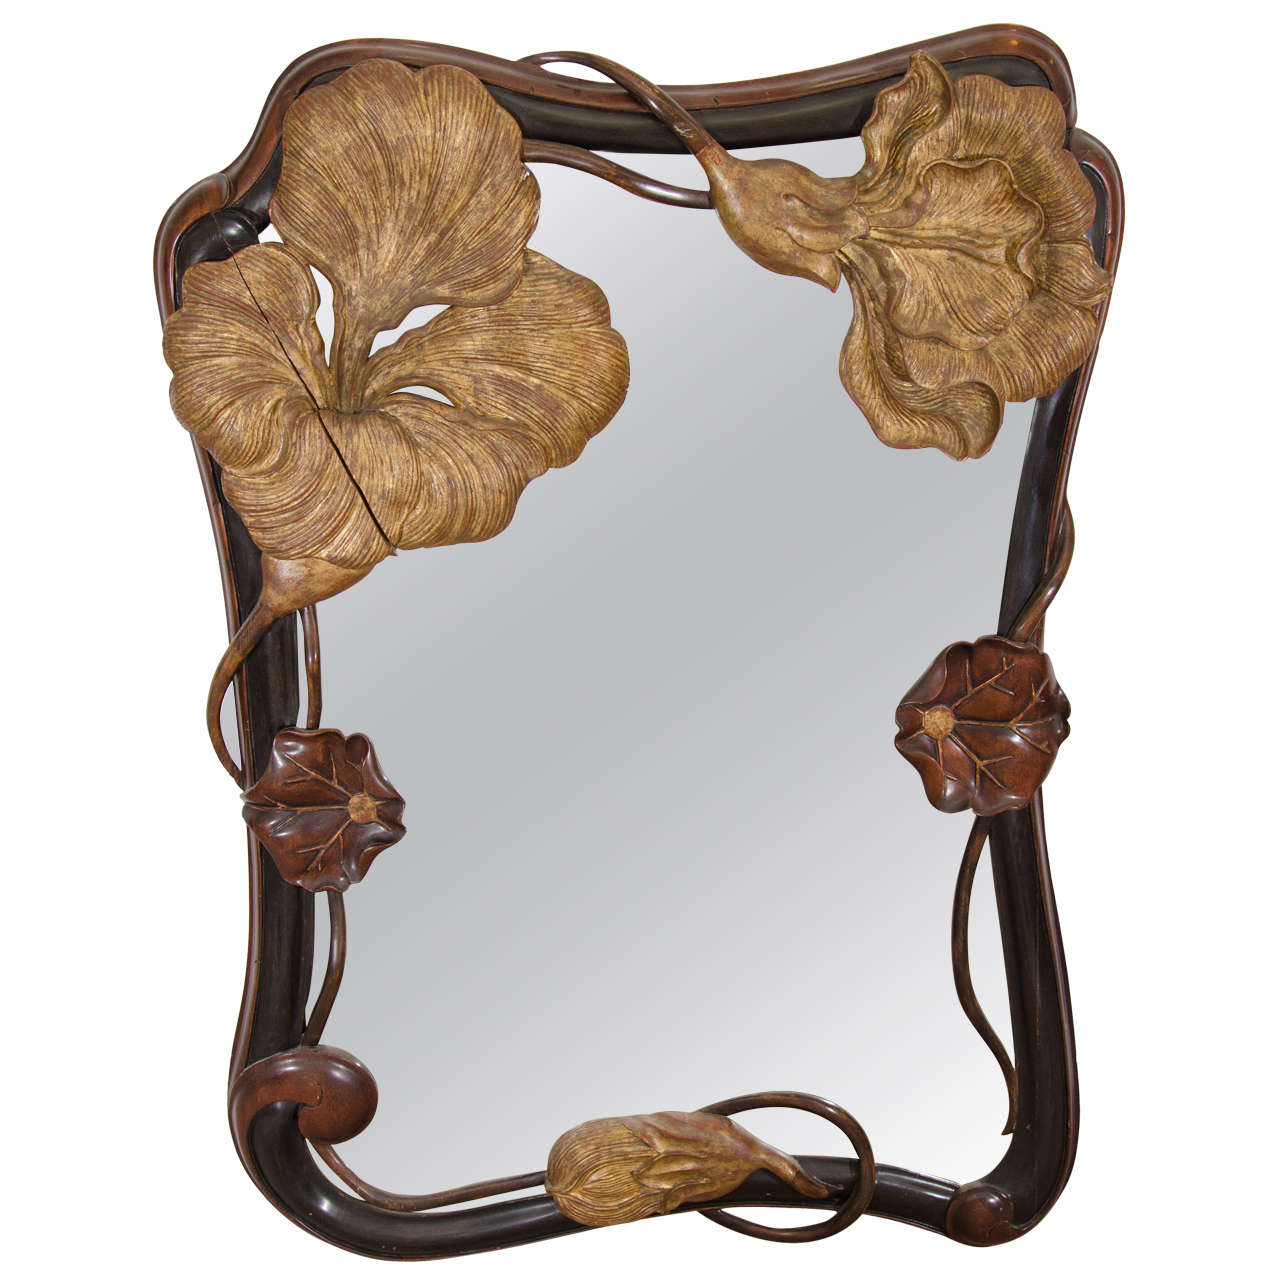 superb art nouveau french carved amp gilded wood wall mirror with sensuous flower art deco mahogany framed office chair